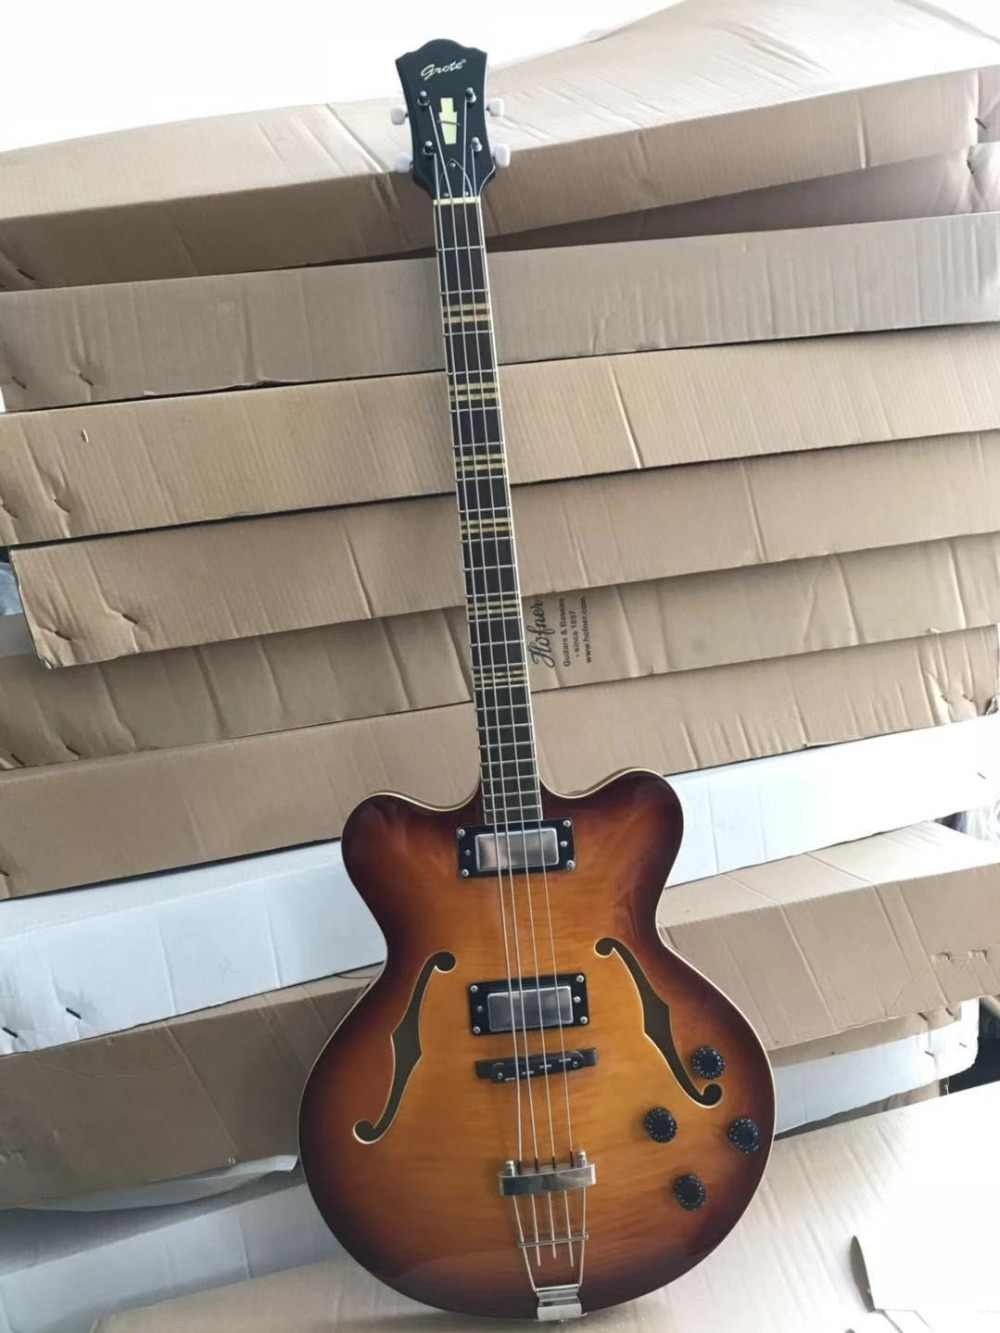 medium resolution of 2019 hofner bass very thin grote htc 500 7 sb staple top